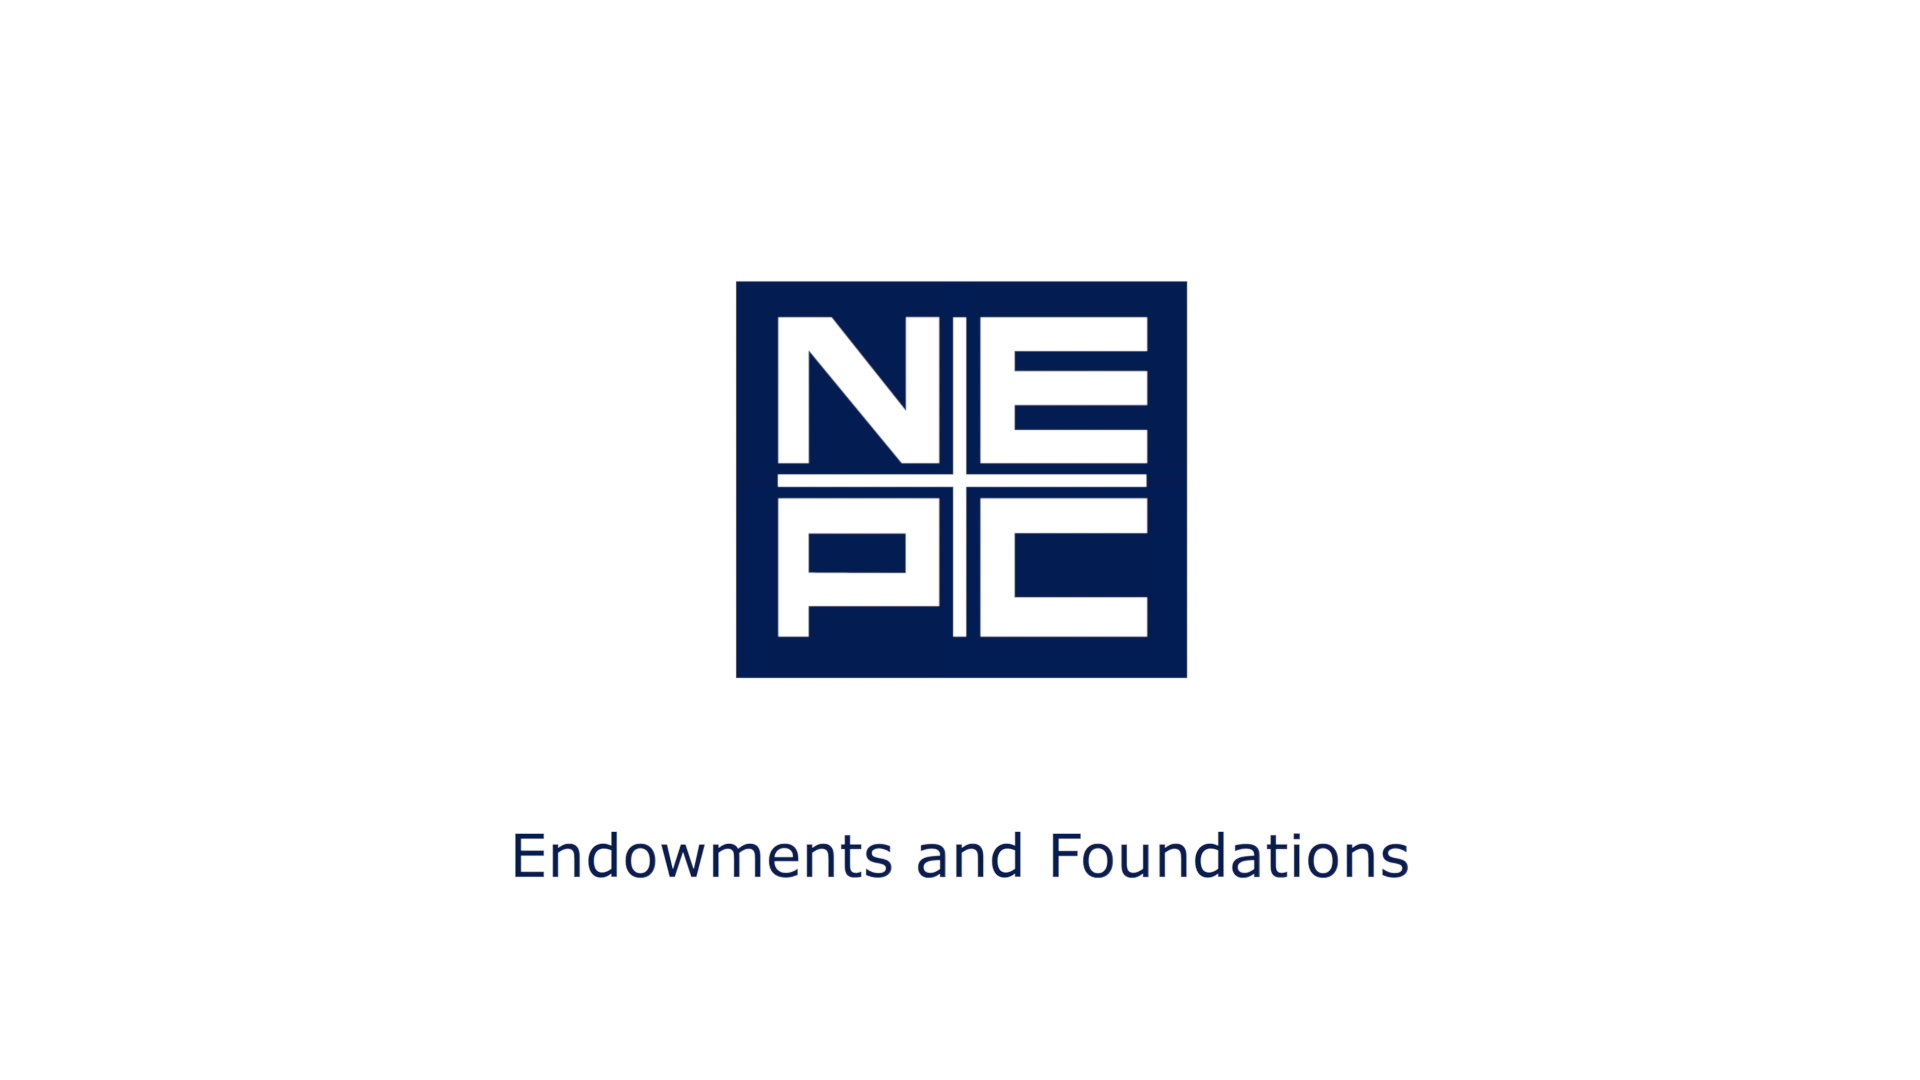 NEPC - Endowments and Foundations